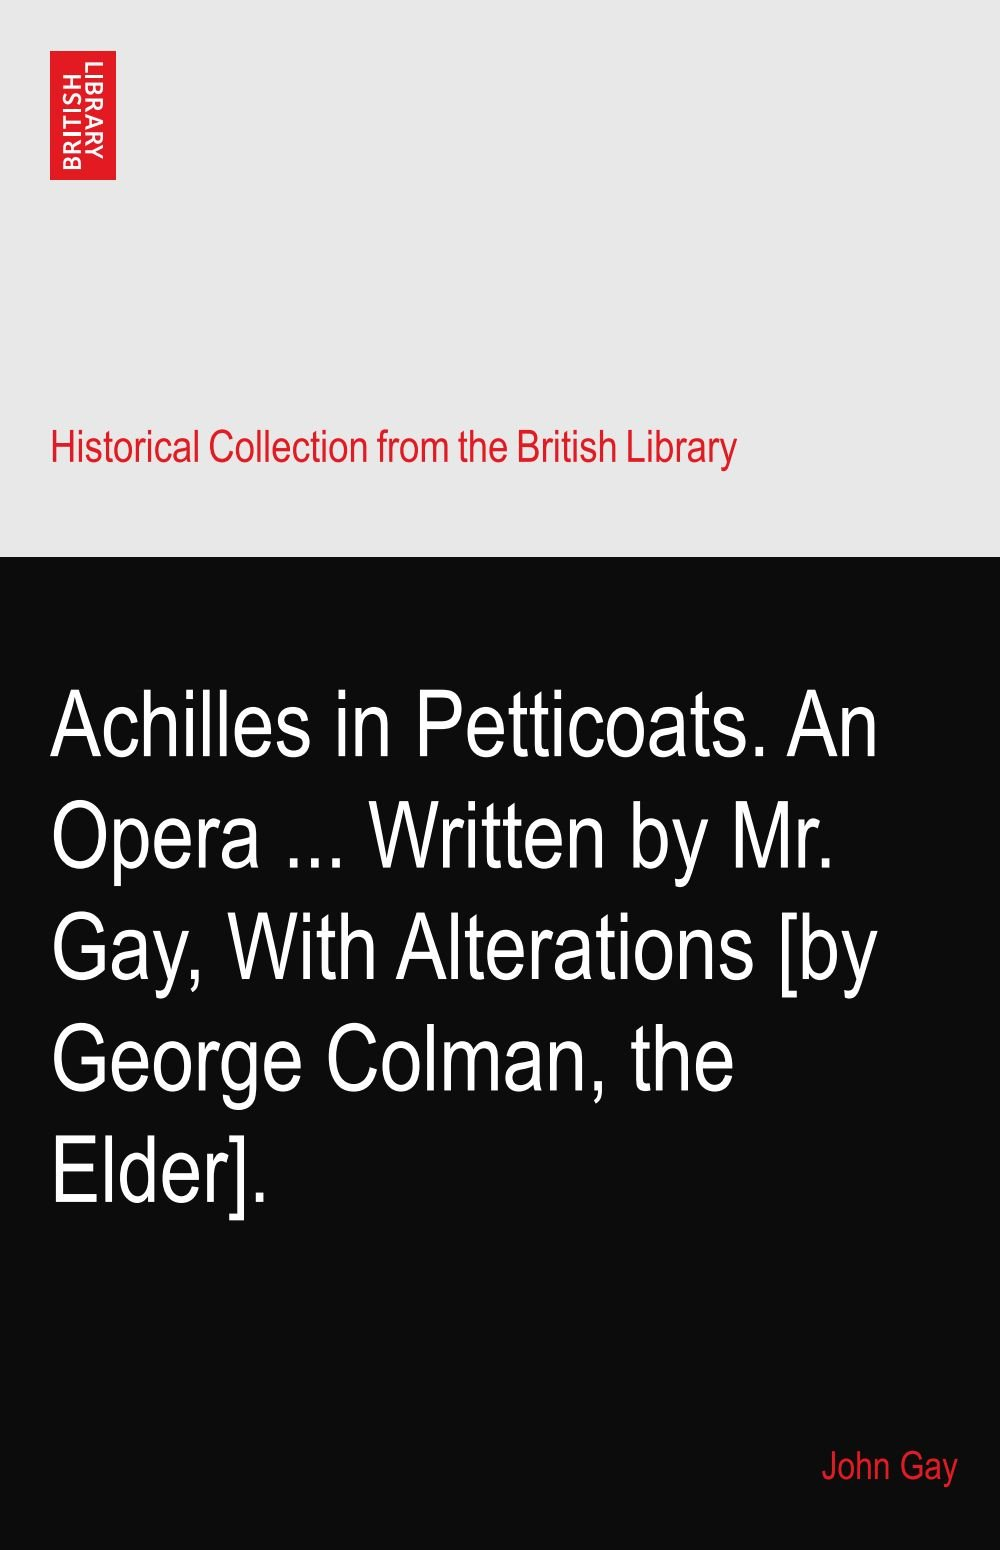 Download Achilles in Petticoats. An Opera ... Written by Mr. Gay, With Alterations [by George Colman, the Elder]. ebook